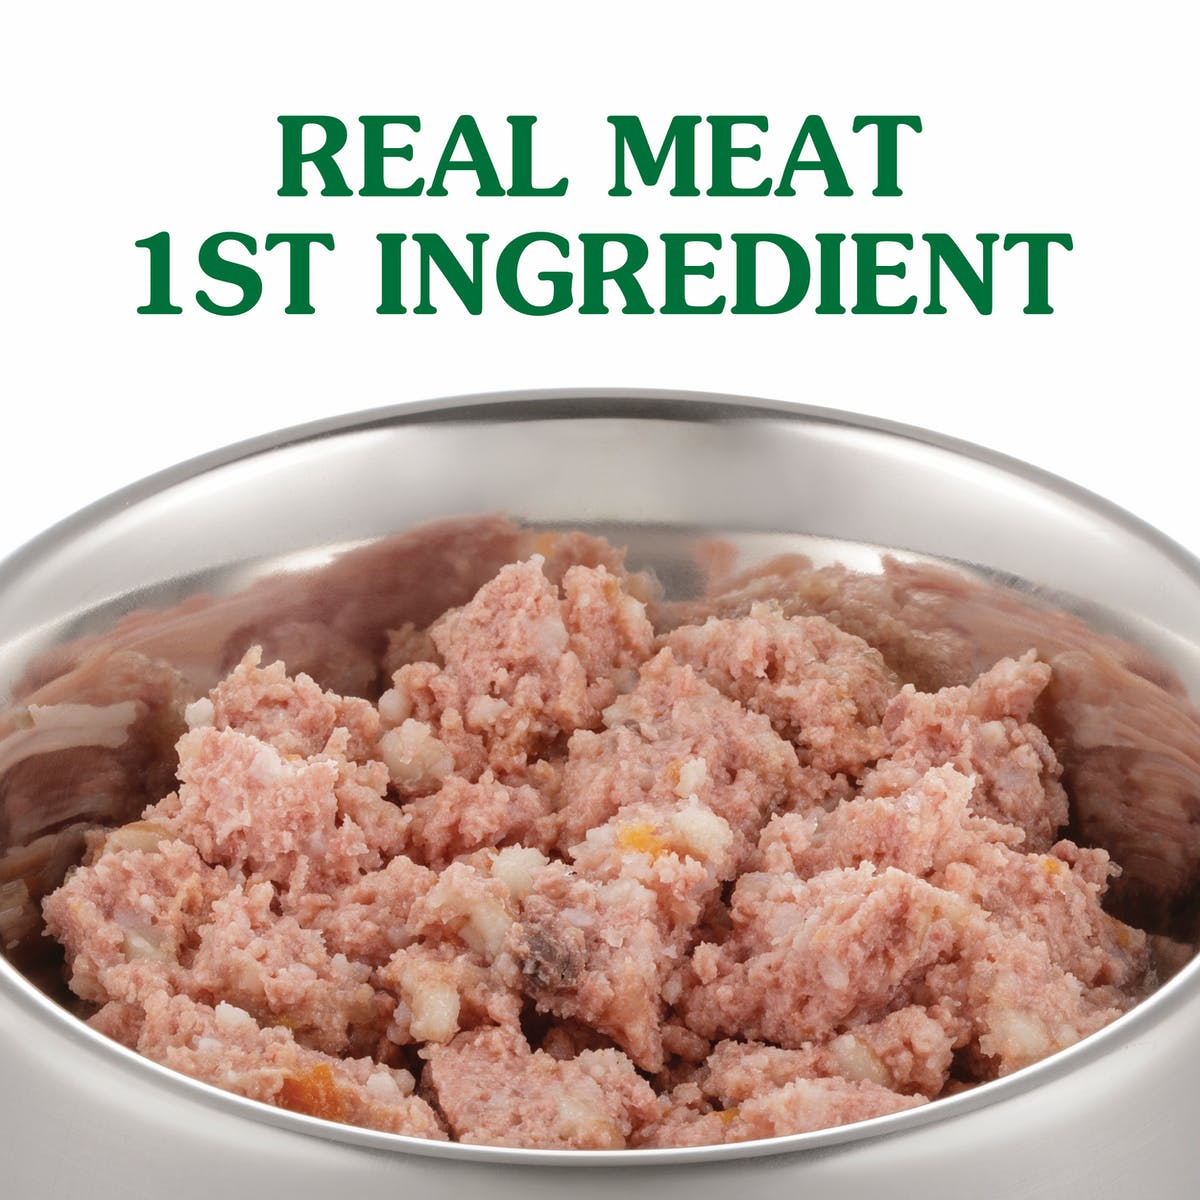 Nature's Gift | with Beef, Barley & Vegetables | Wet dog food | Left of pack